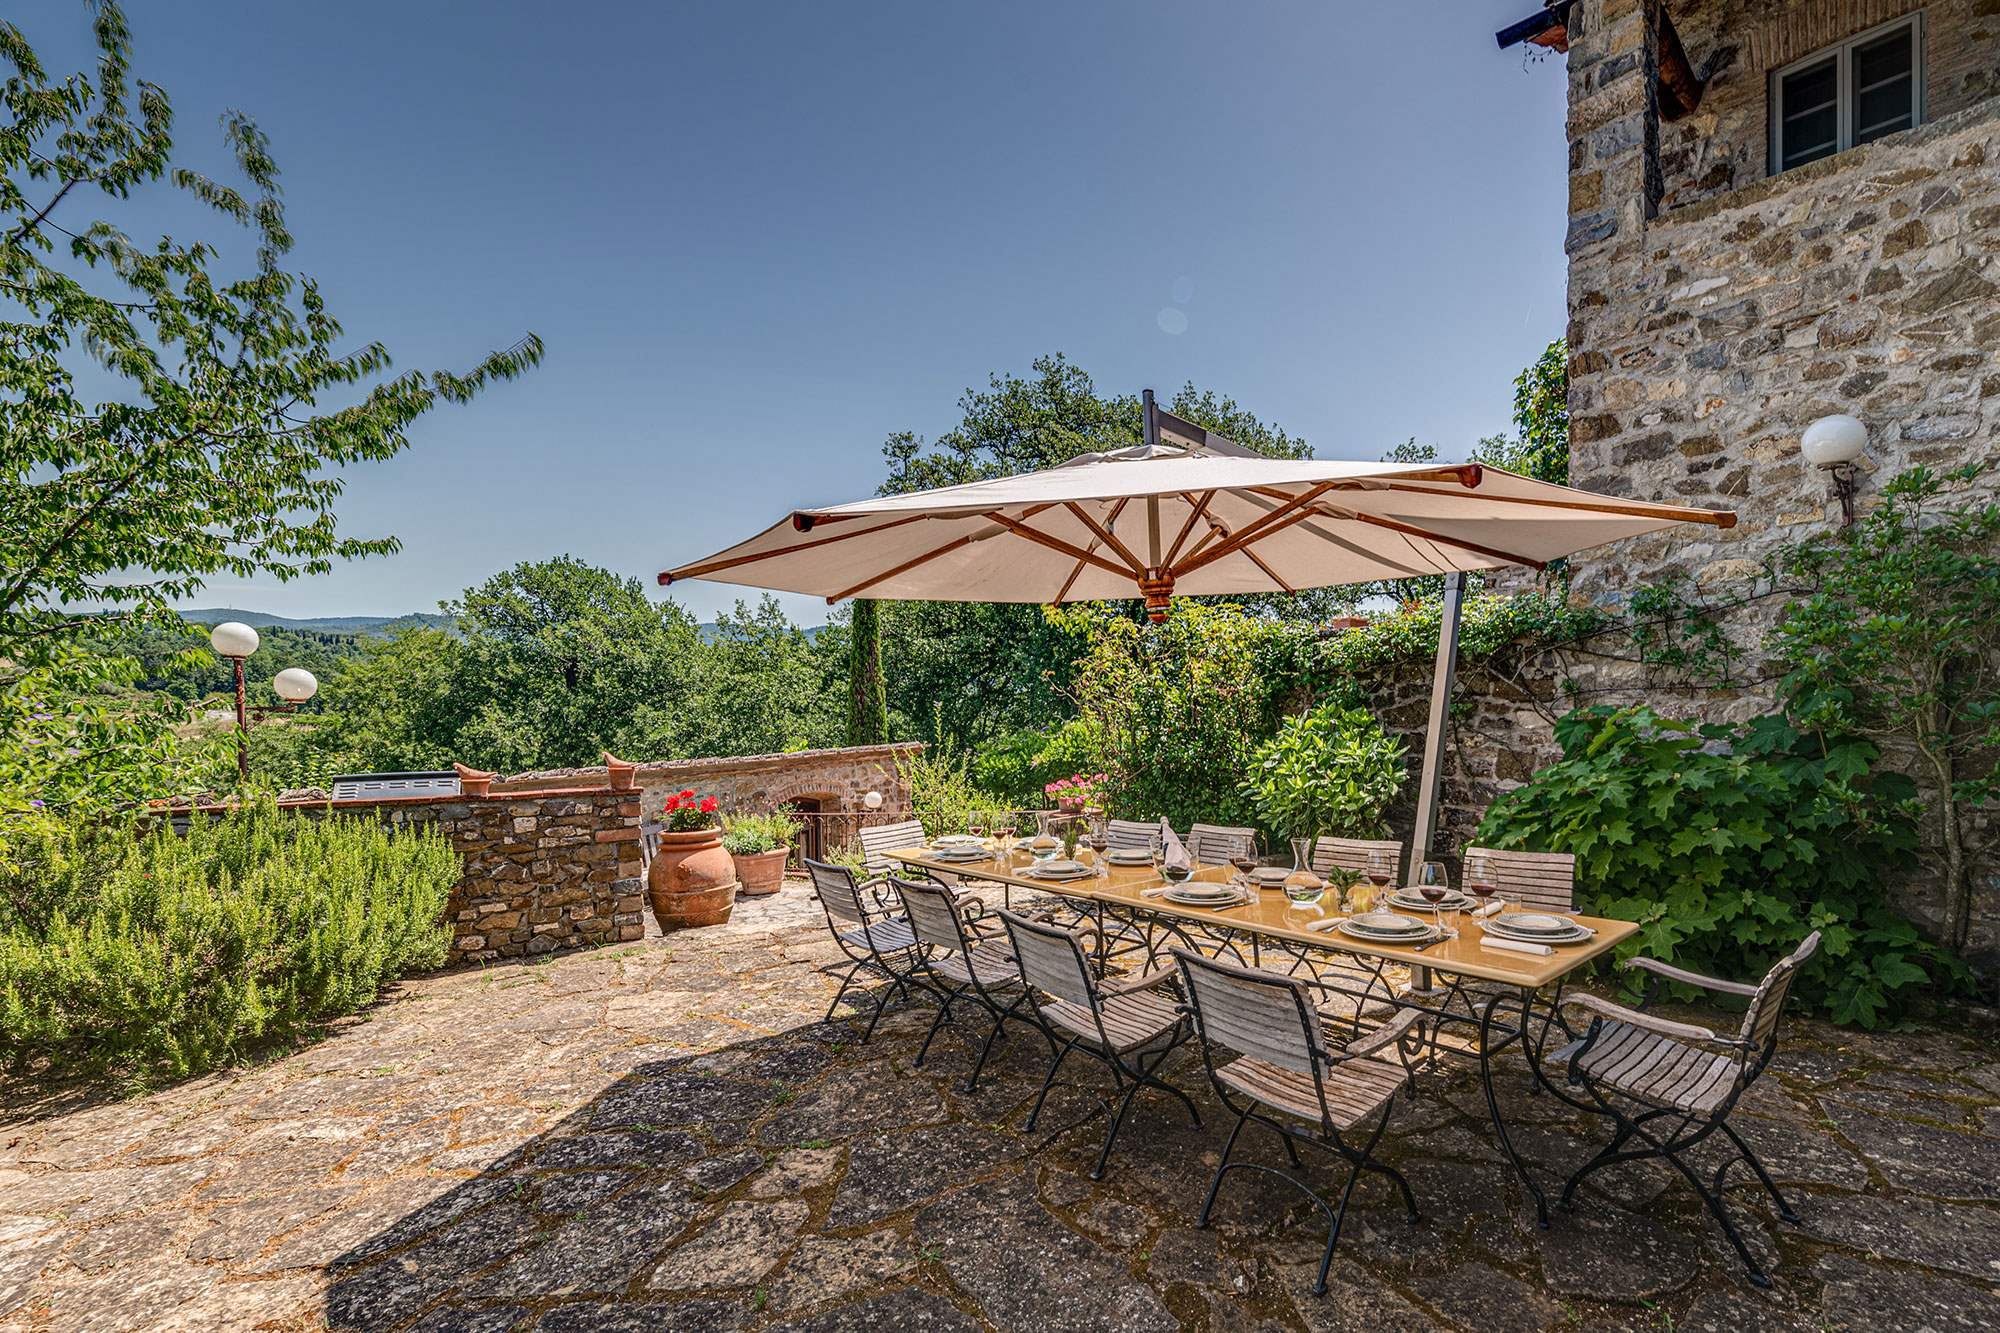 Villa Claudia, 6 Bedroom rate, 6 bedroom villa in Chianti & Countryside, Tuscany Photo #4